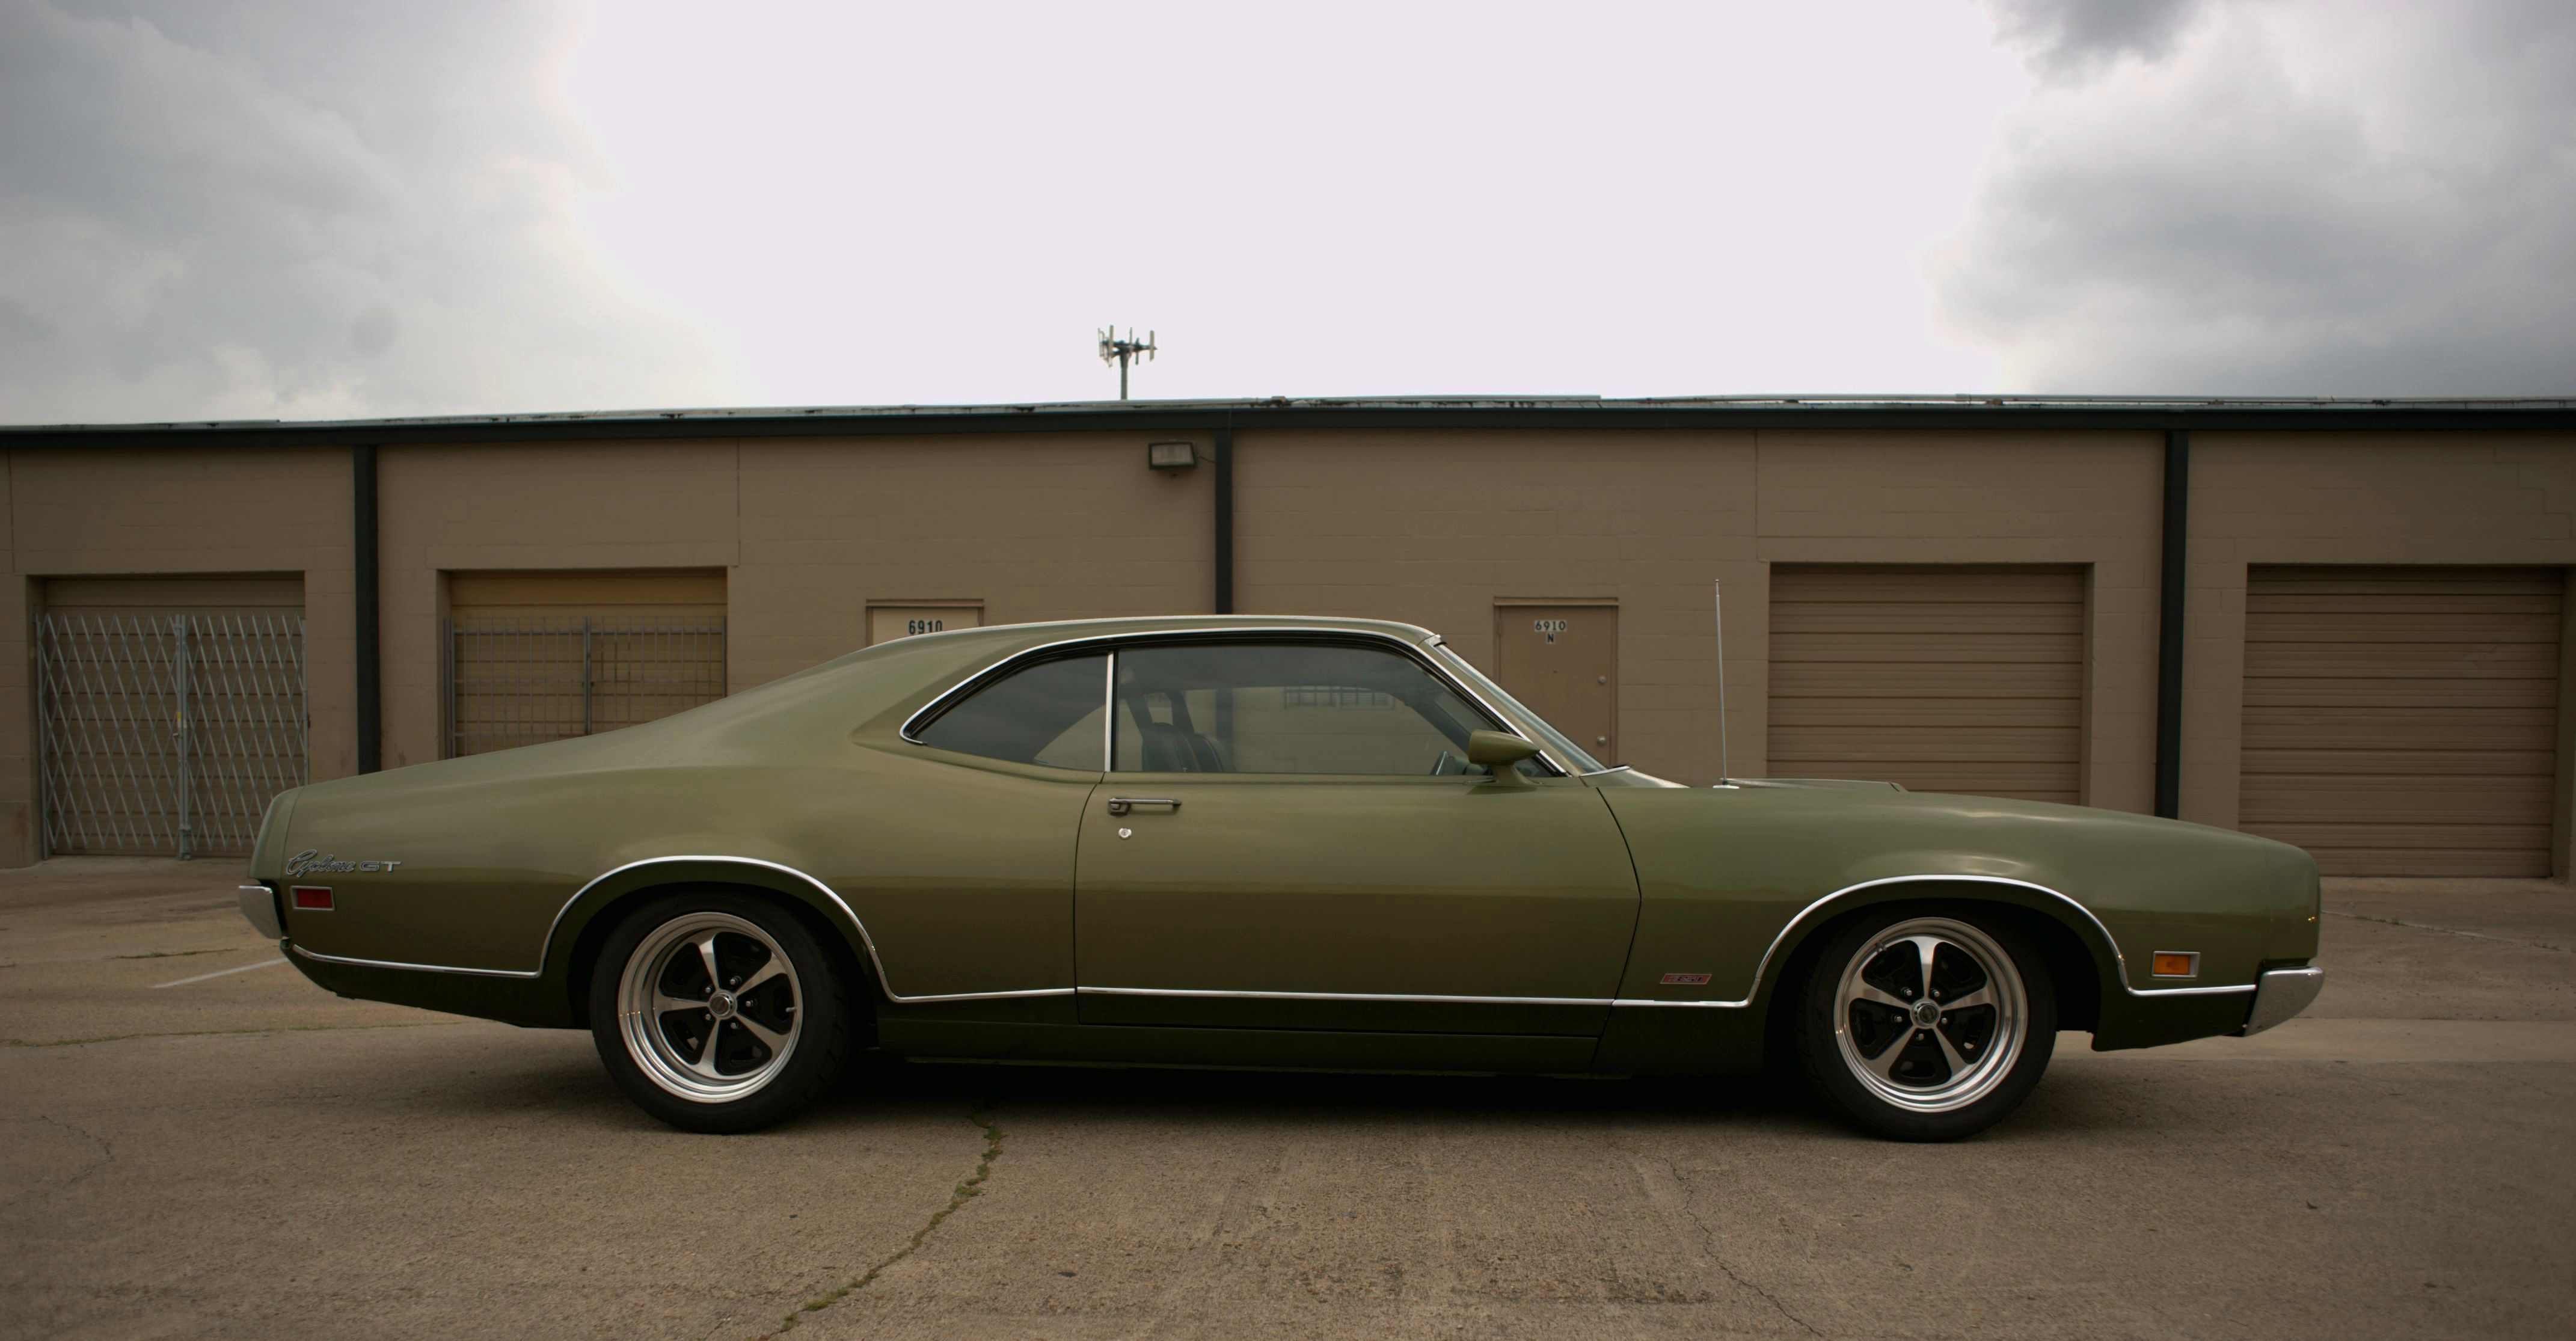 1970 Cyclone Profile Classic Cars Pinterest Hot And Ford Police Car